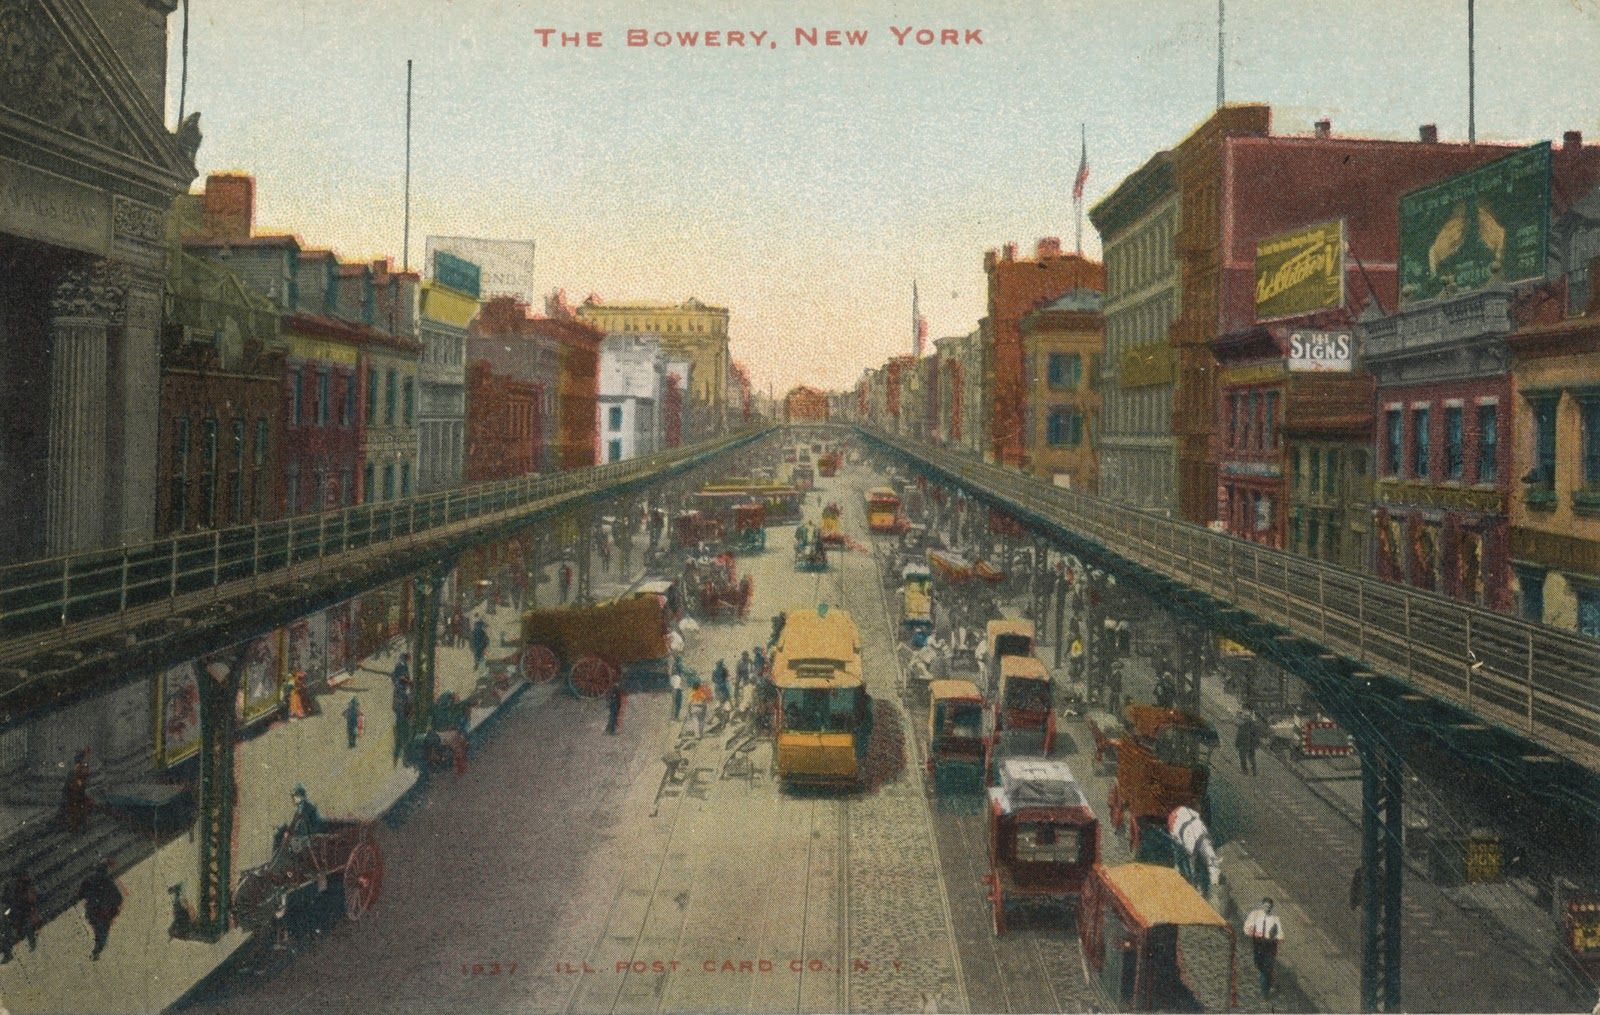 map of old 5 points bowery